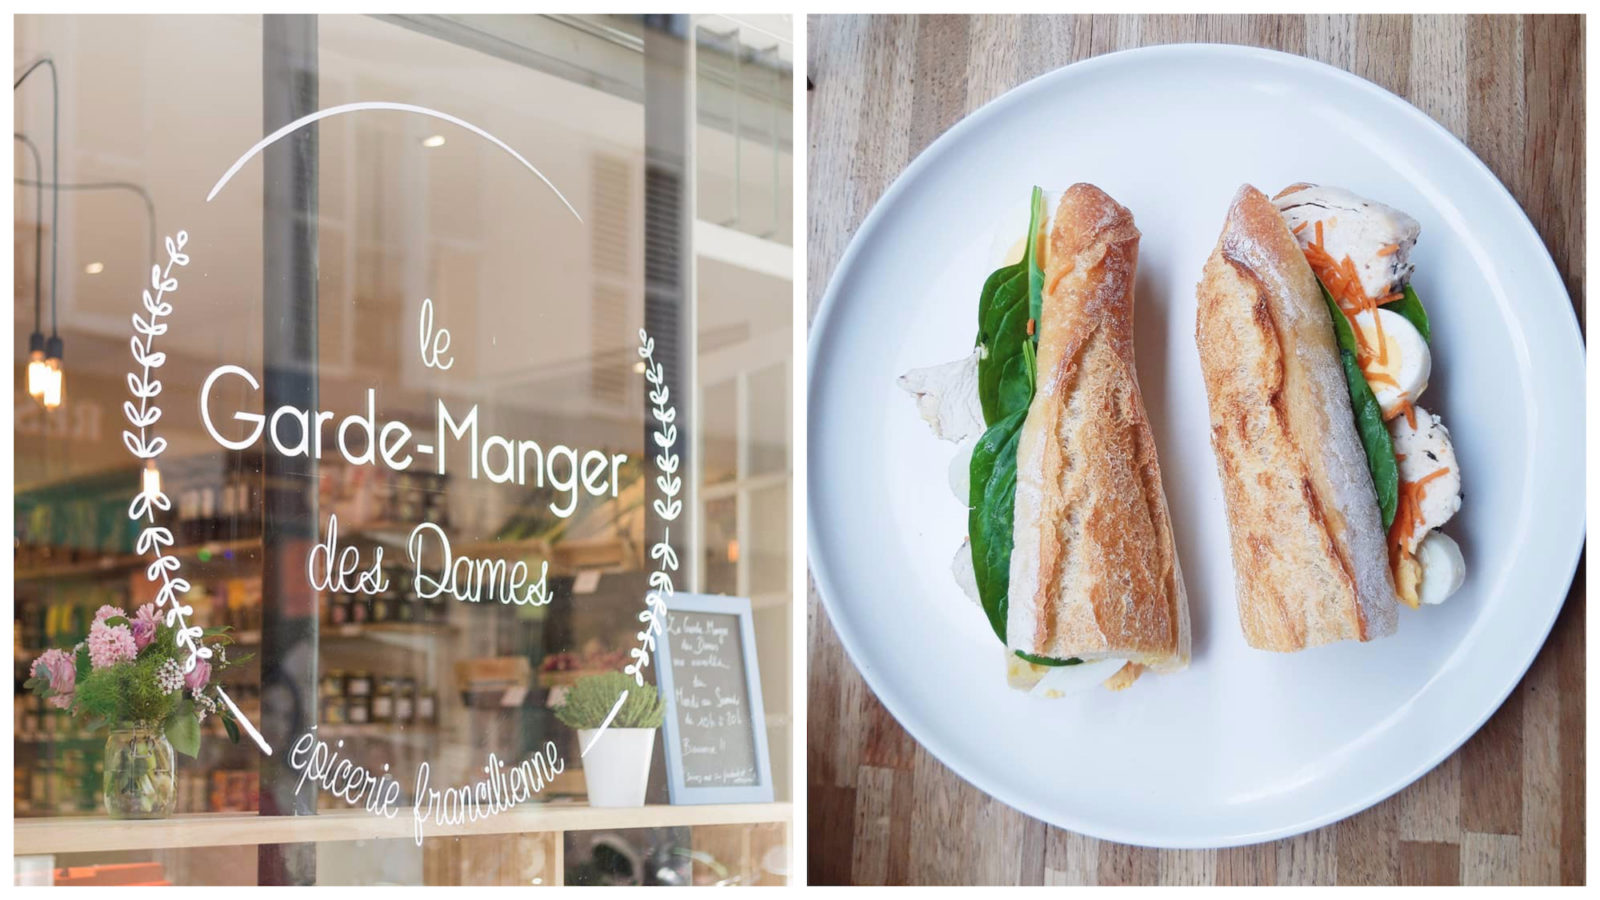 Le Garde Manger des Dames in the Batignolles area of Paris is a go-to for sustainably sourced food and it's also a cafe that makes tasty baguette sandwiches.